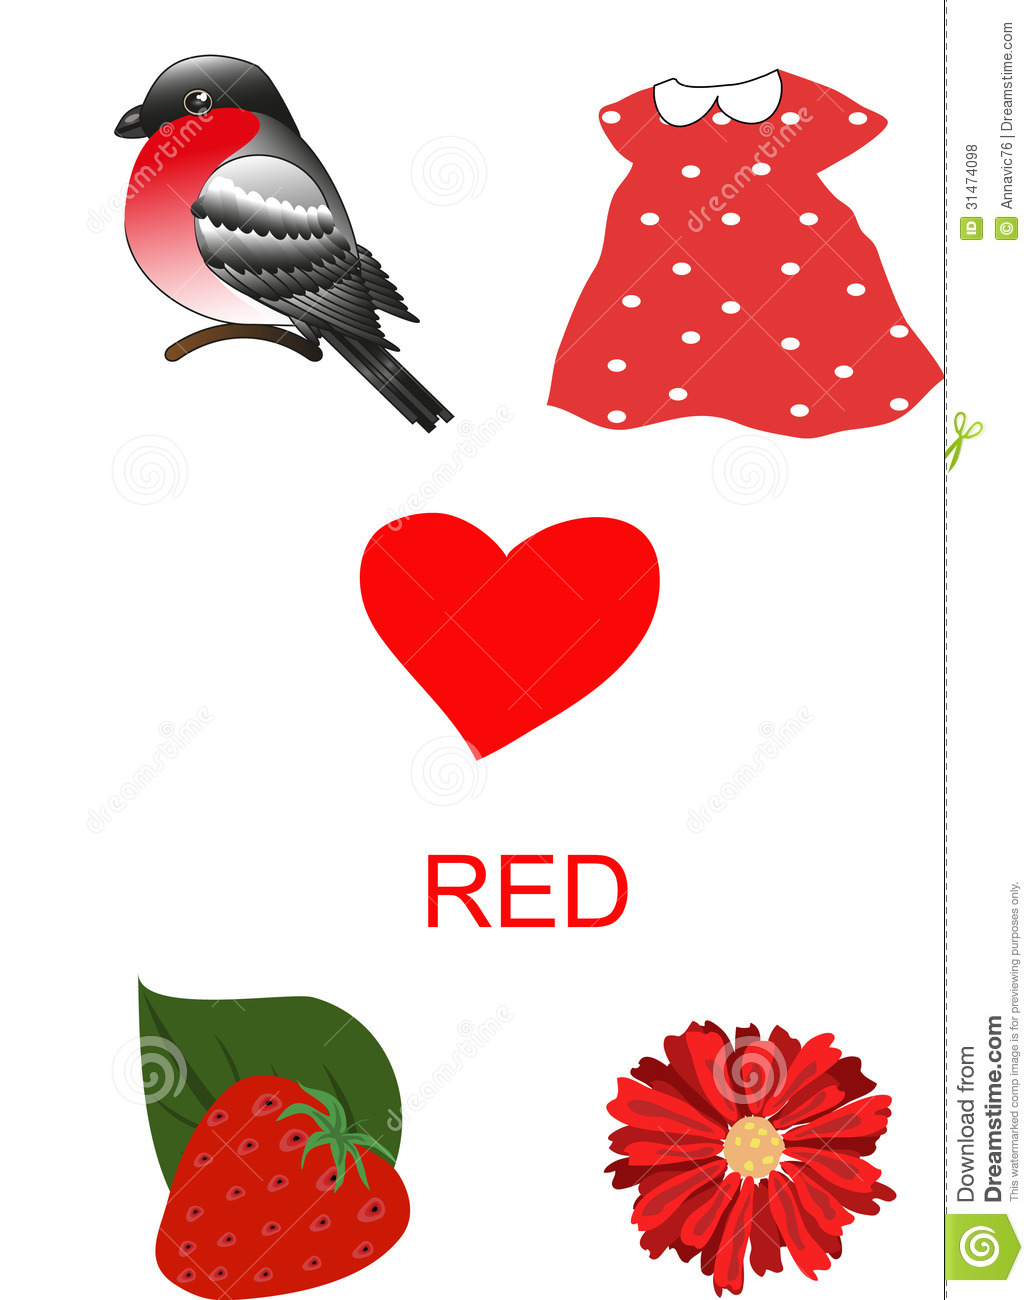 Objects of red color royalty free stock photos image - Dreaming about the color red ...